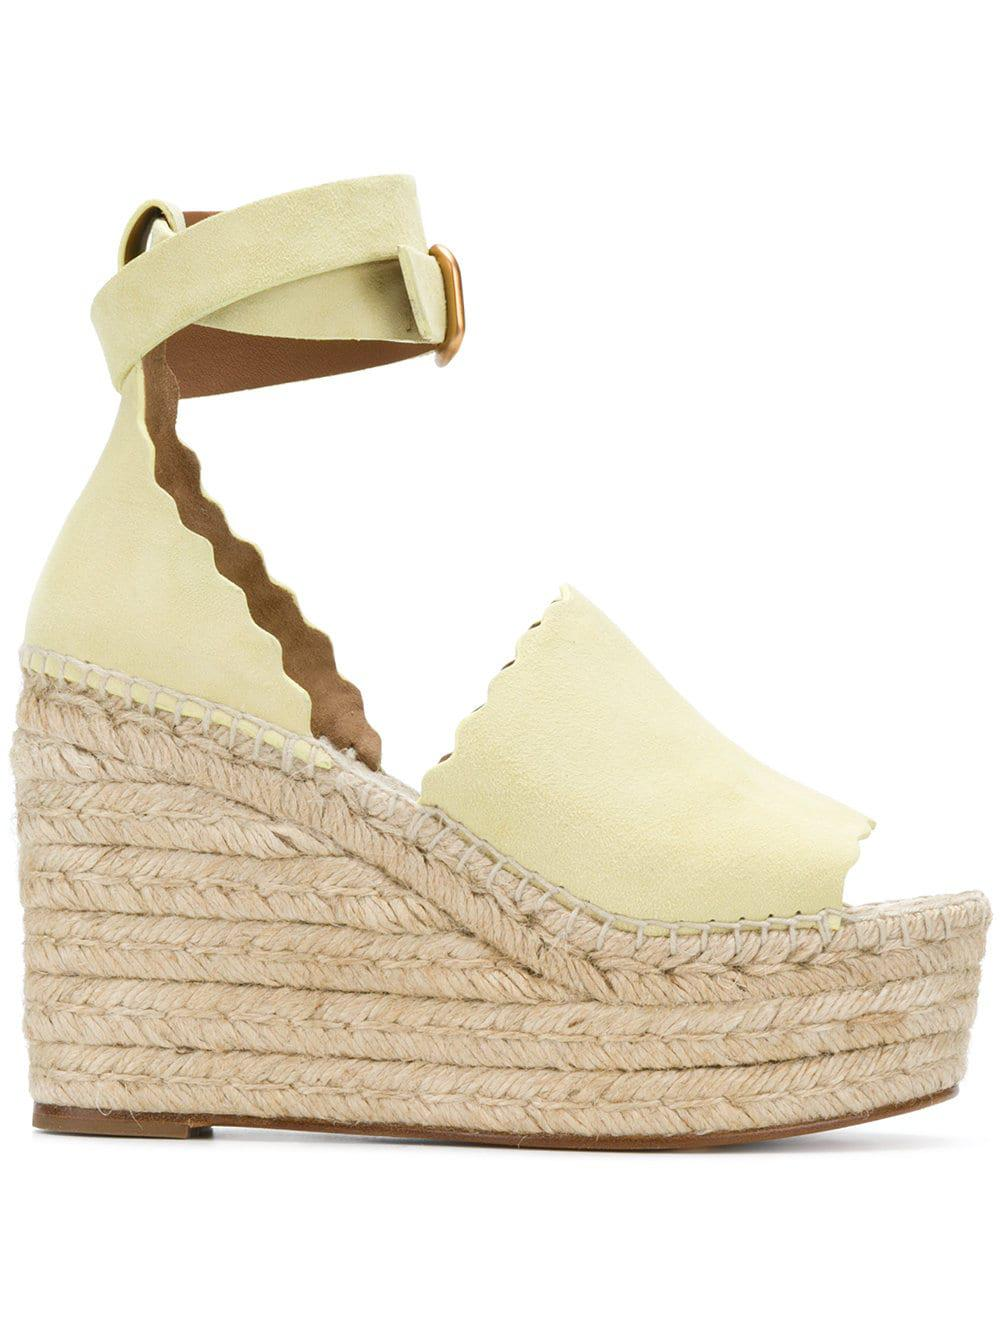 b4c527adda8a Chloé Lauren Espadrille Sandals in Yellow - Lyst